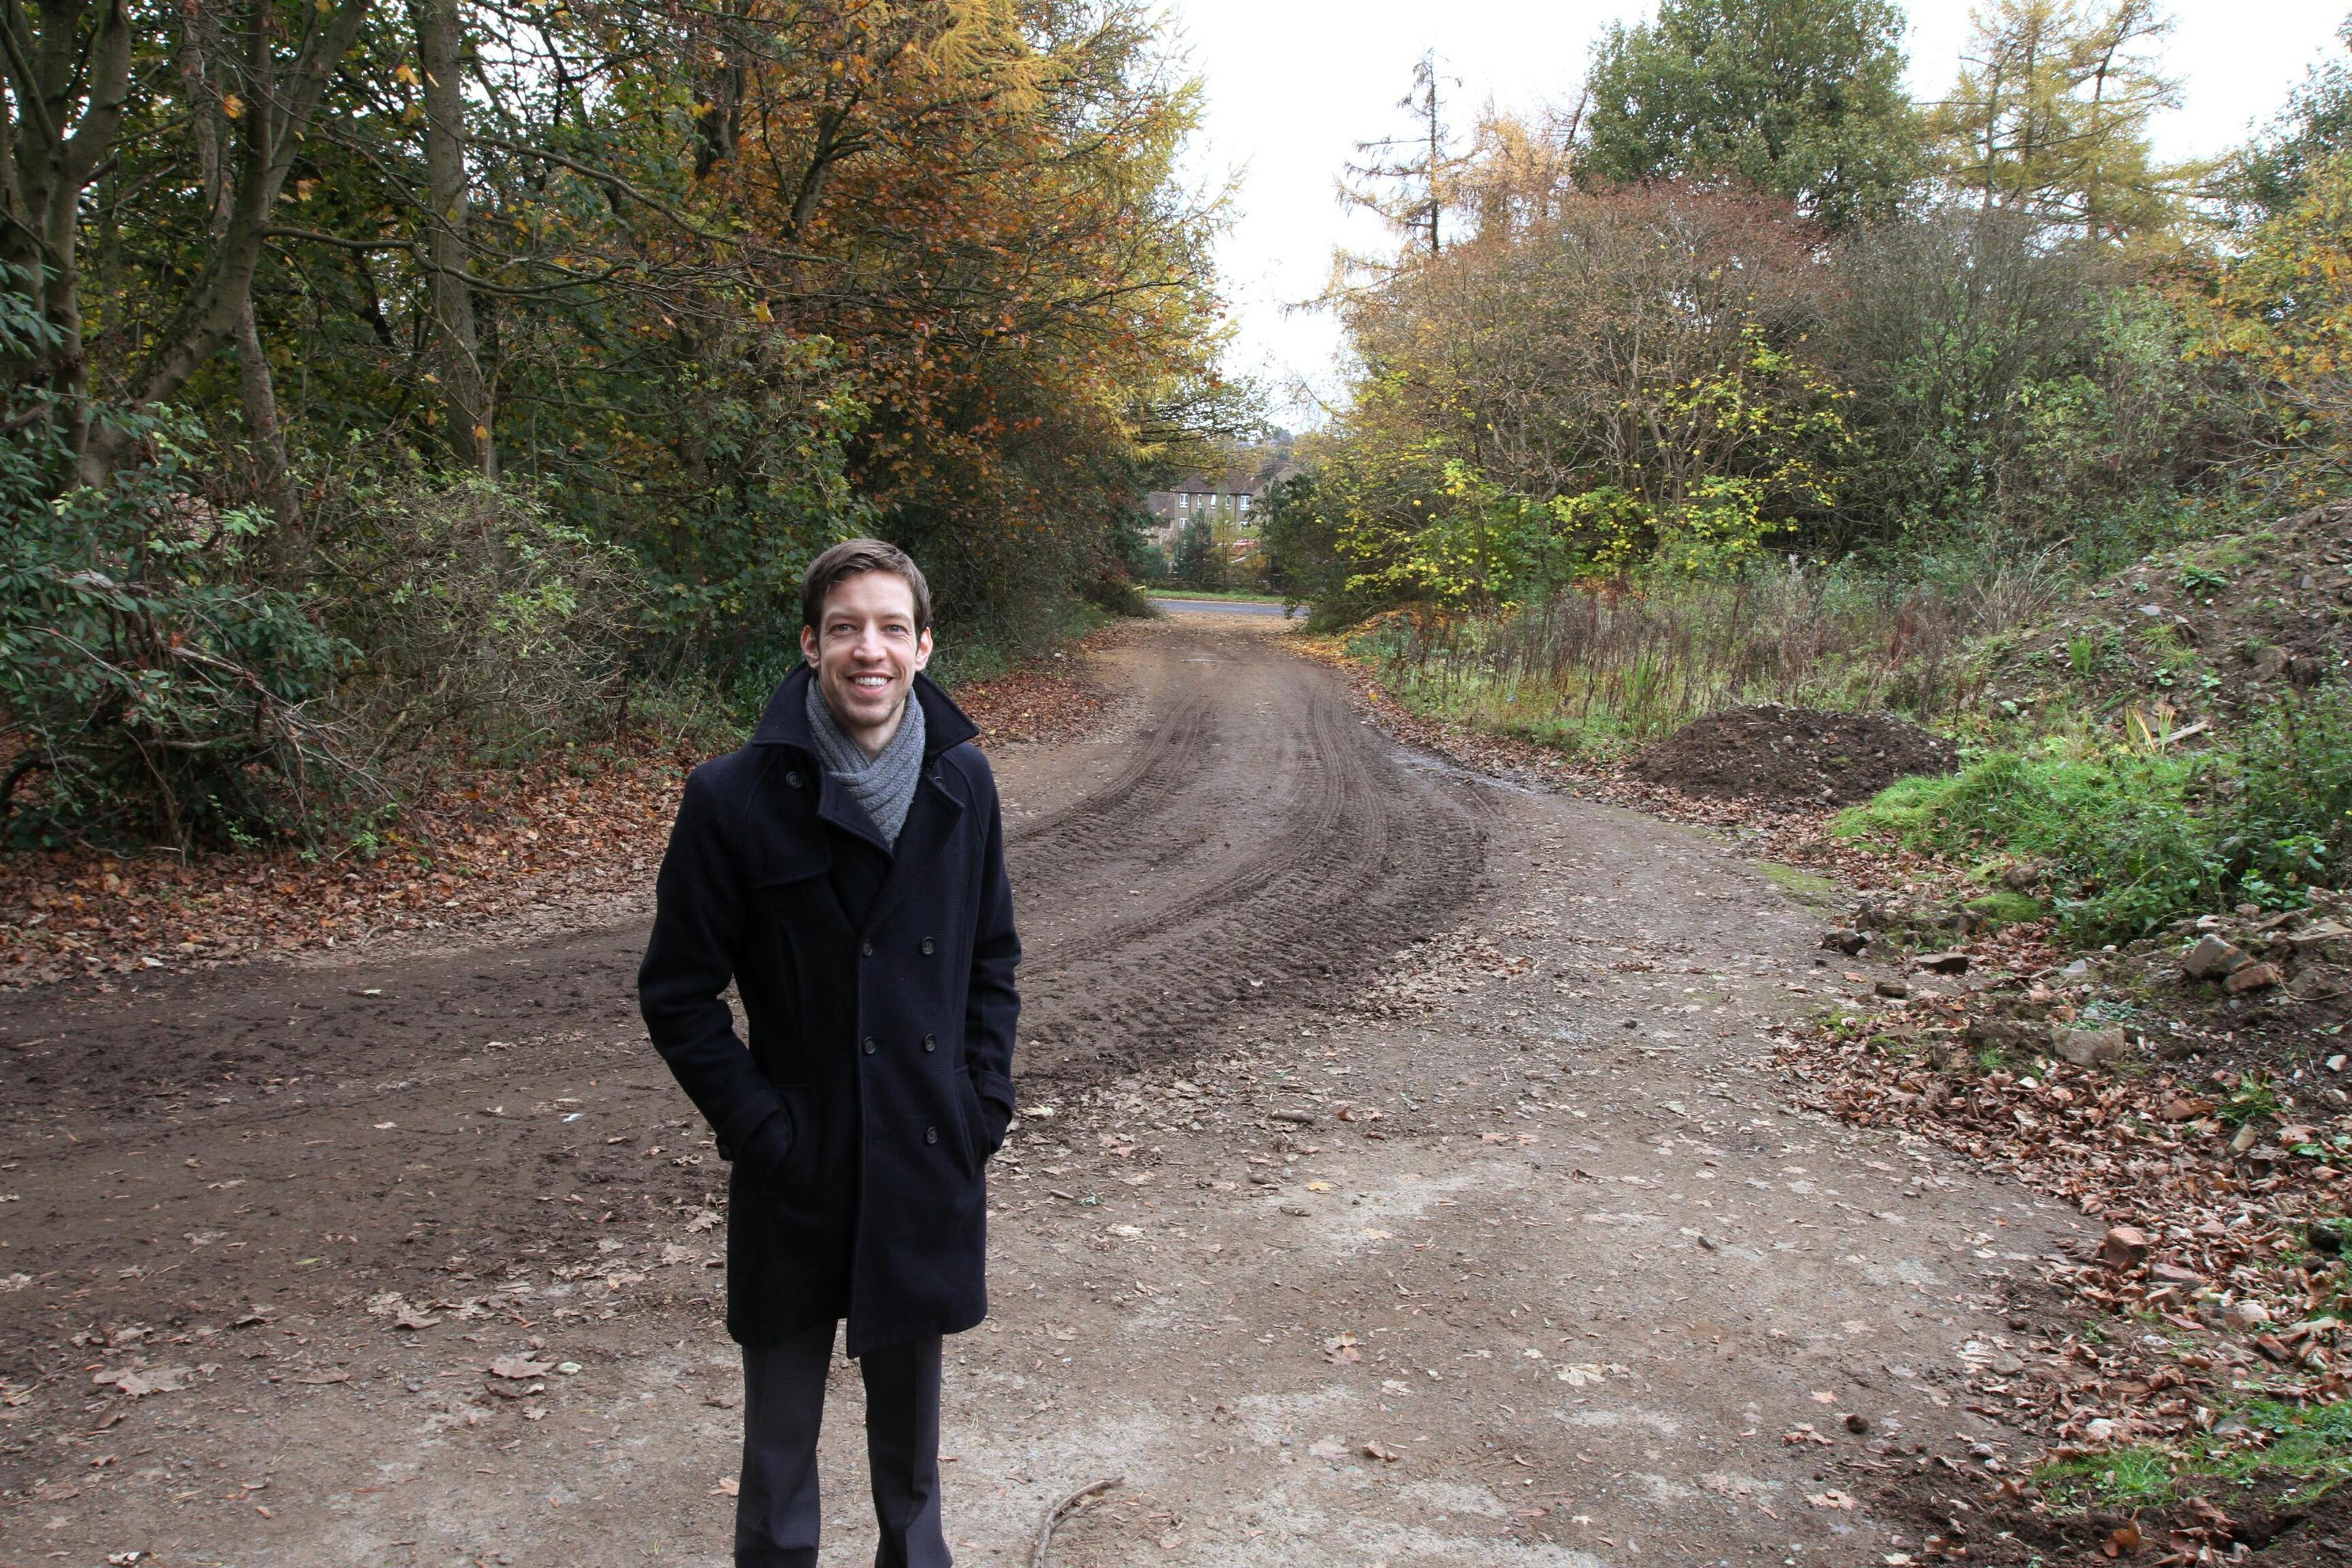 Cllr Alexander at the proposed site